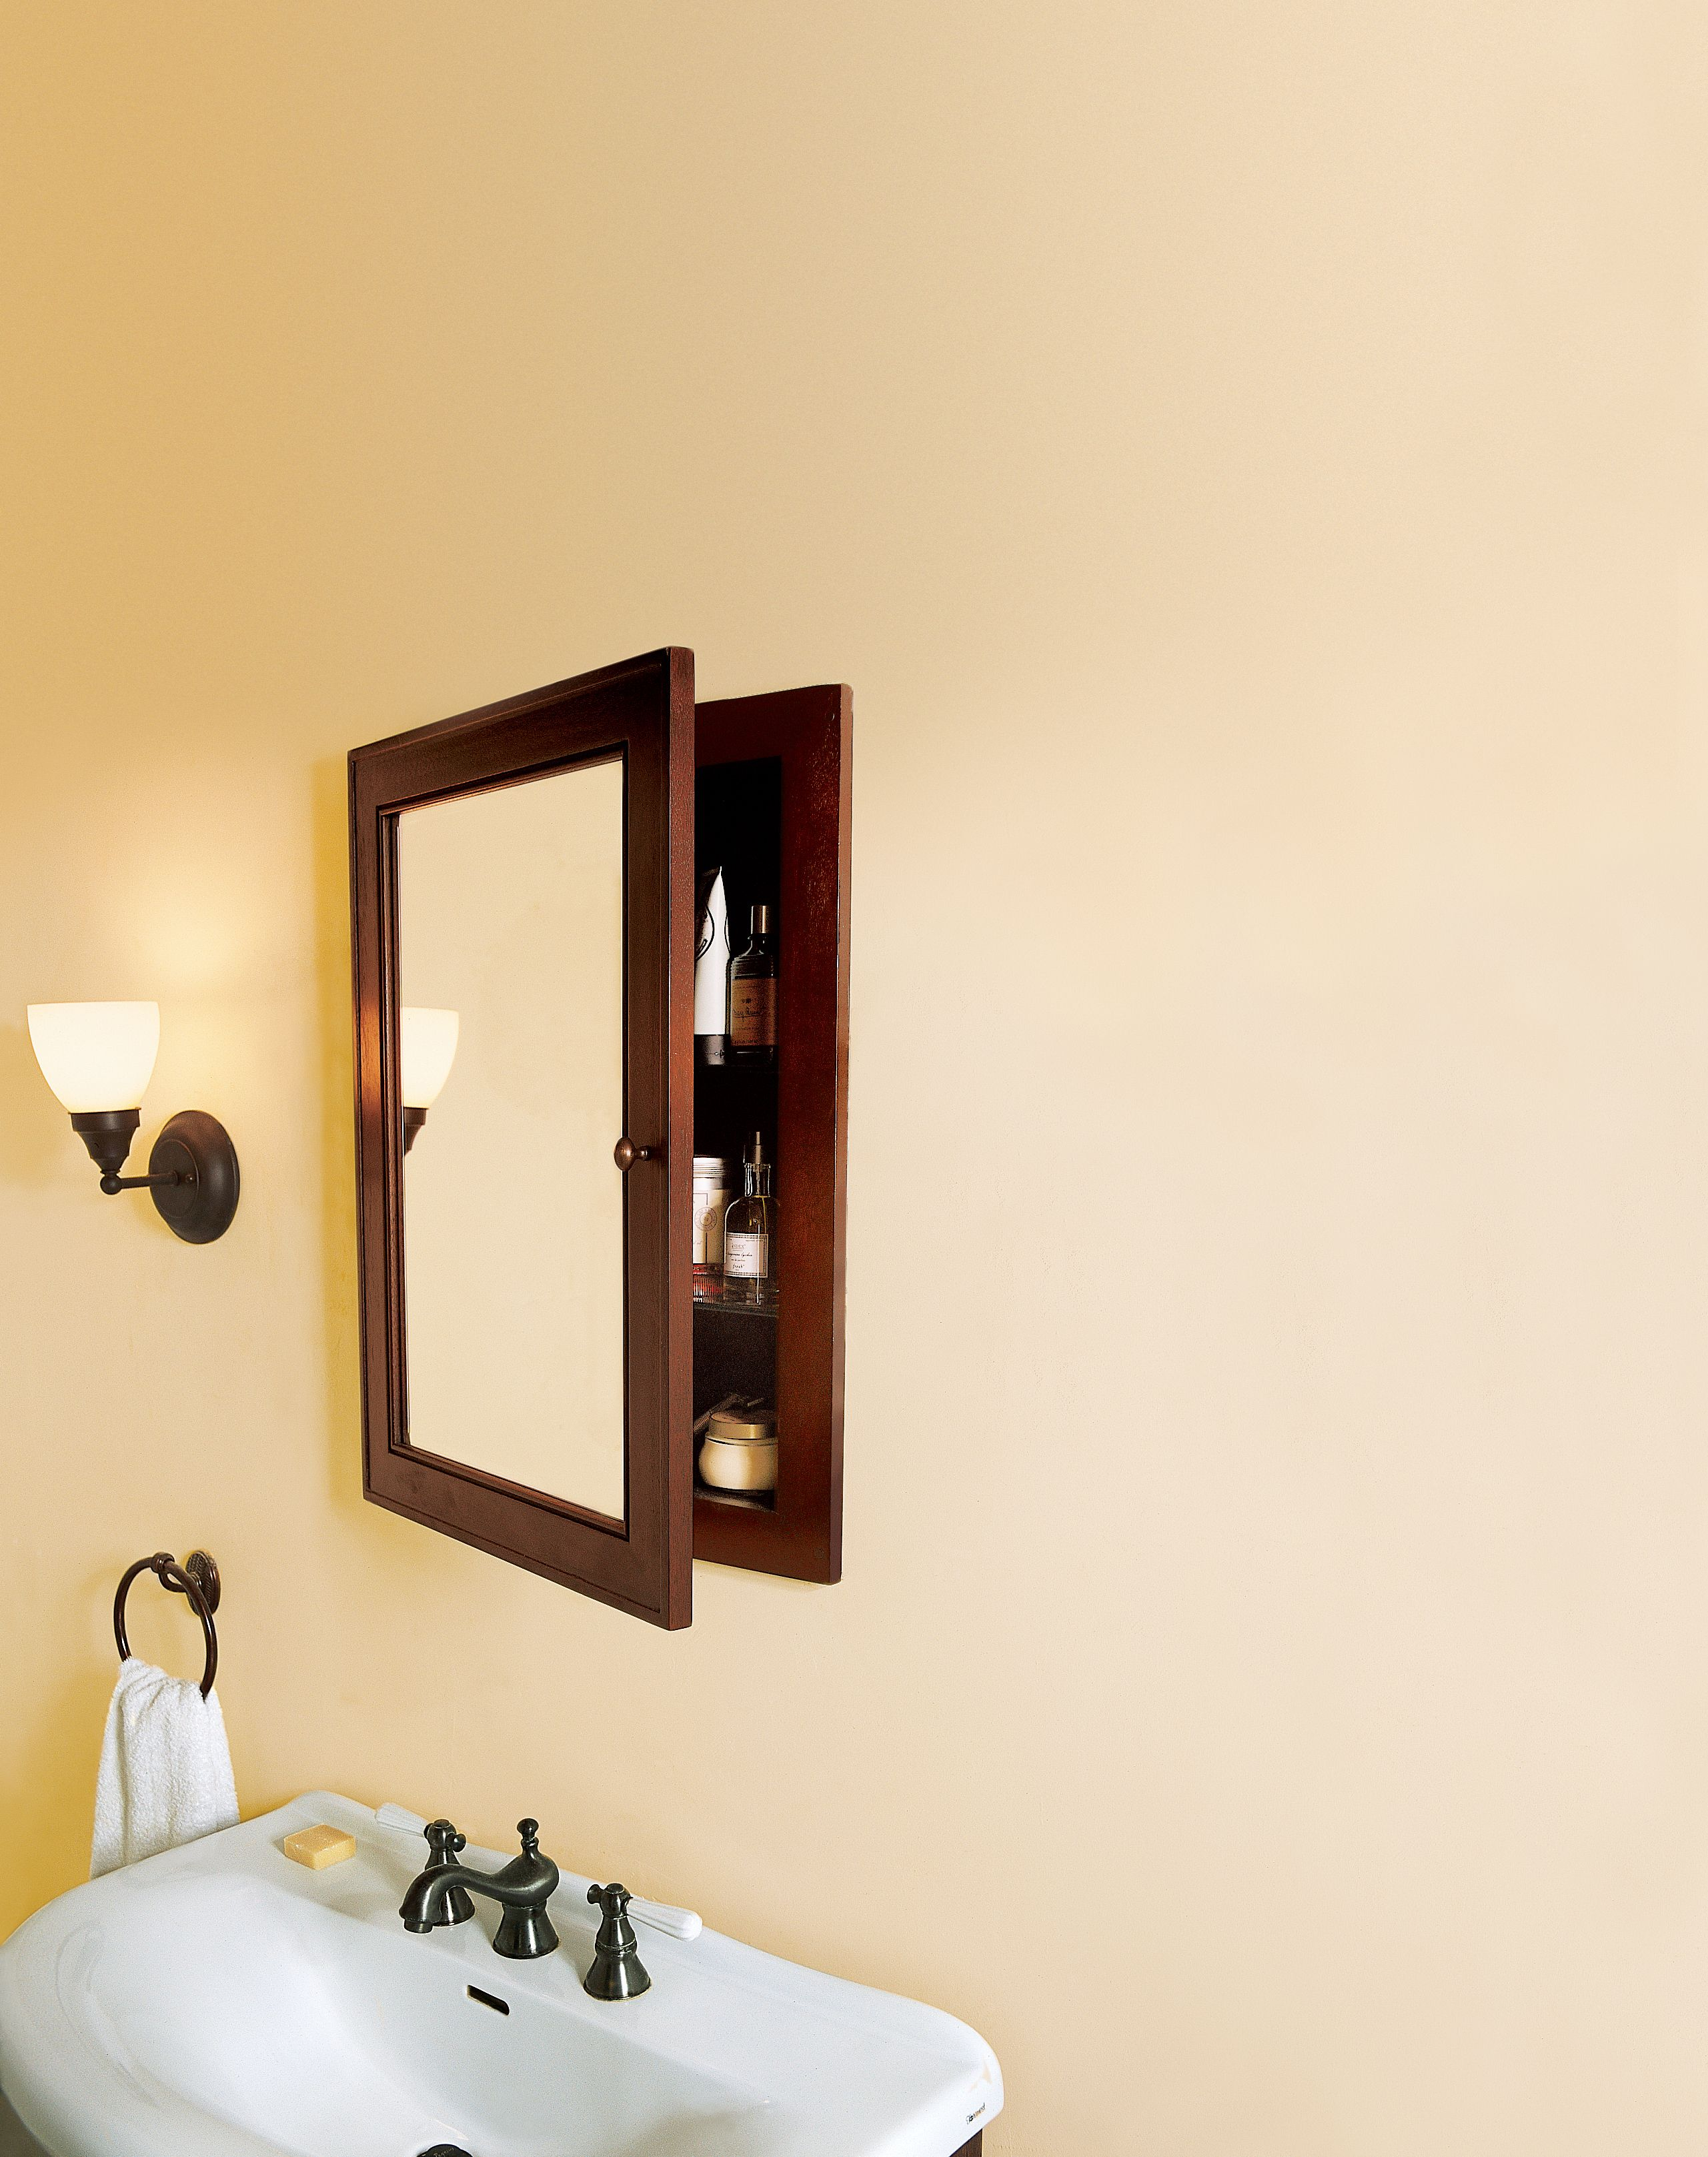 How To Install A Medicine Cabinet With Images Medicine Cabinet